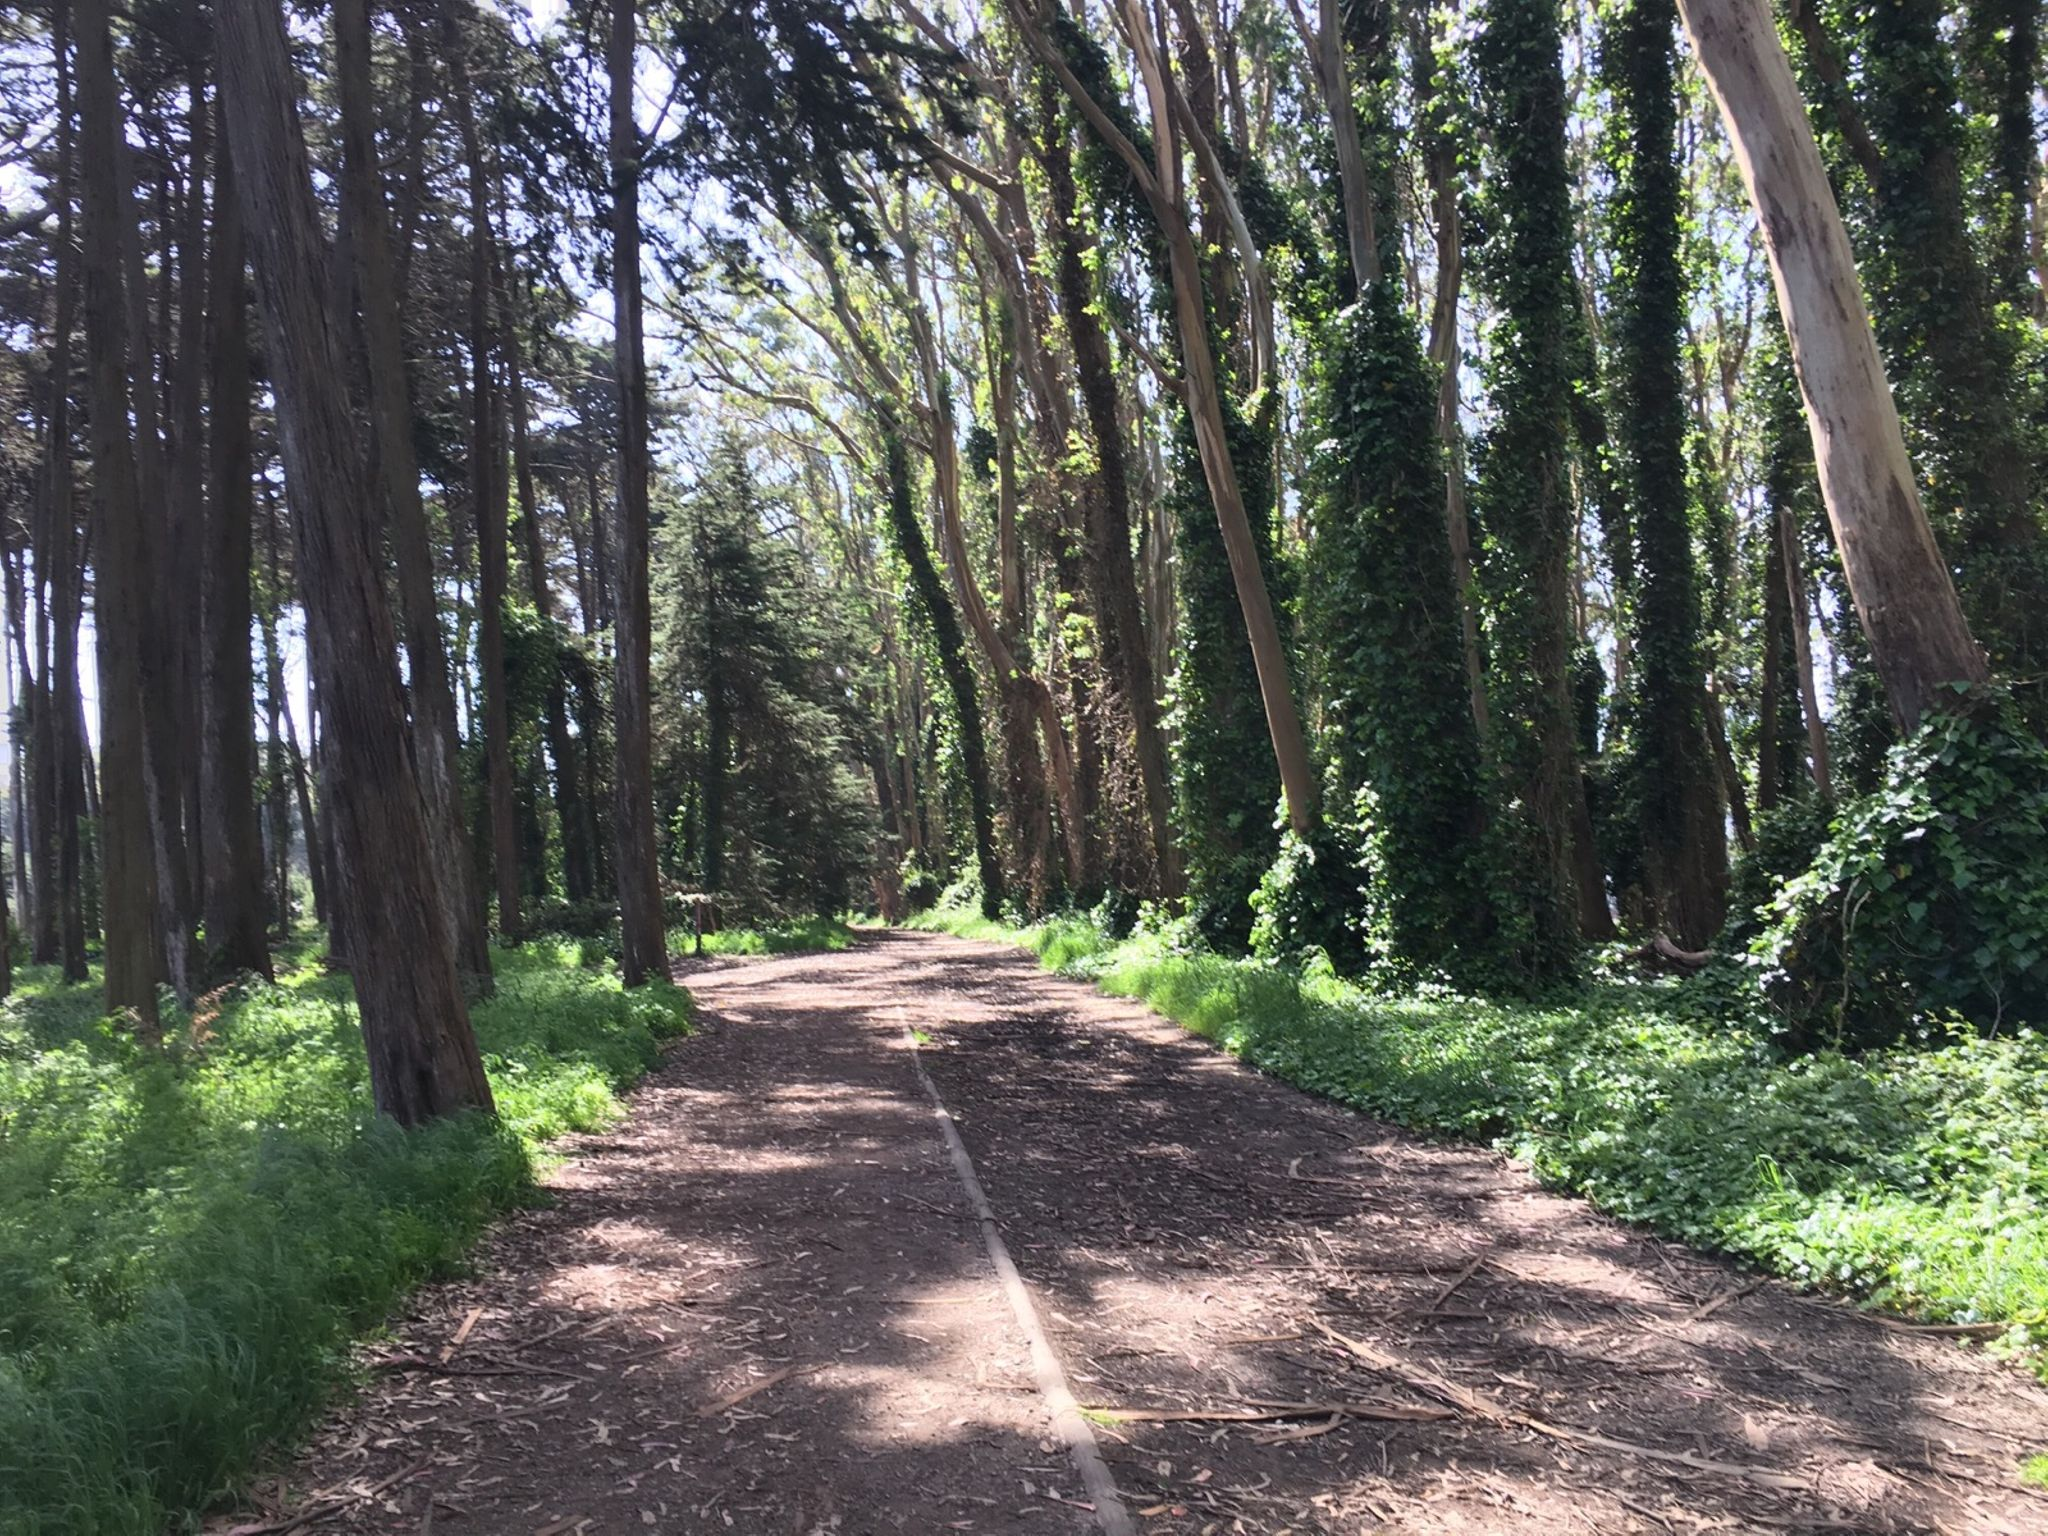 Woodlands in the Presidio